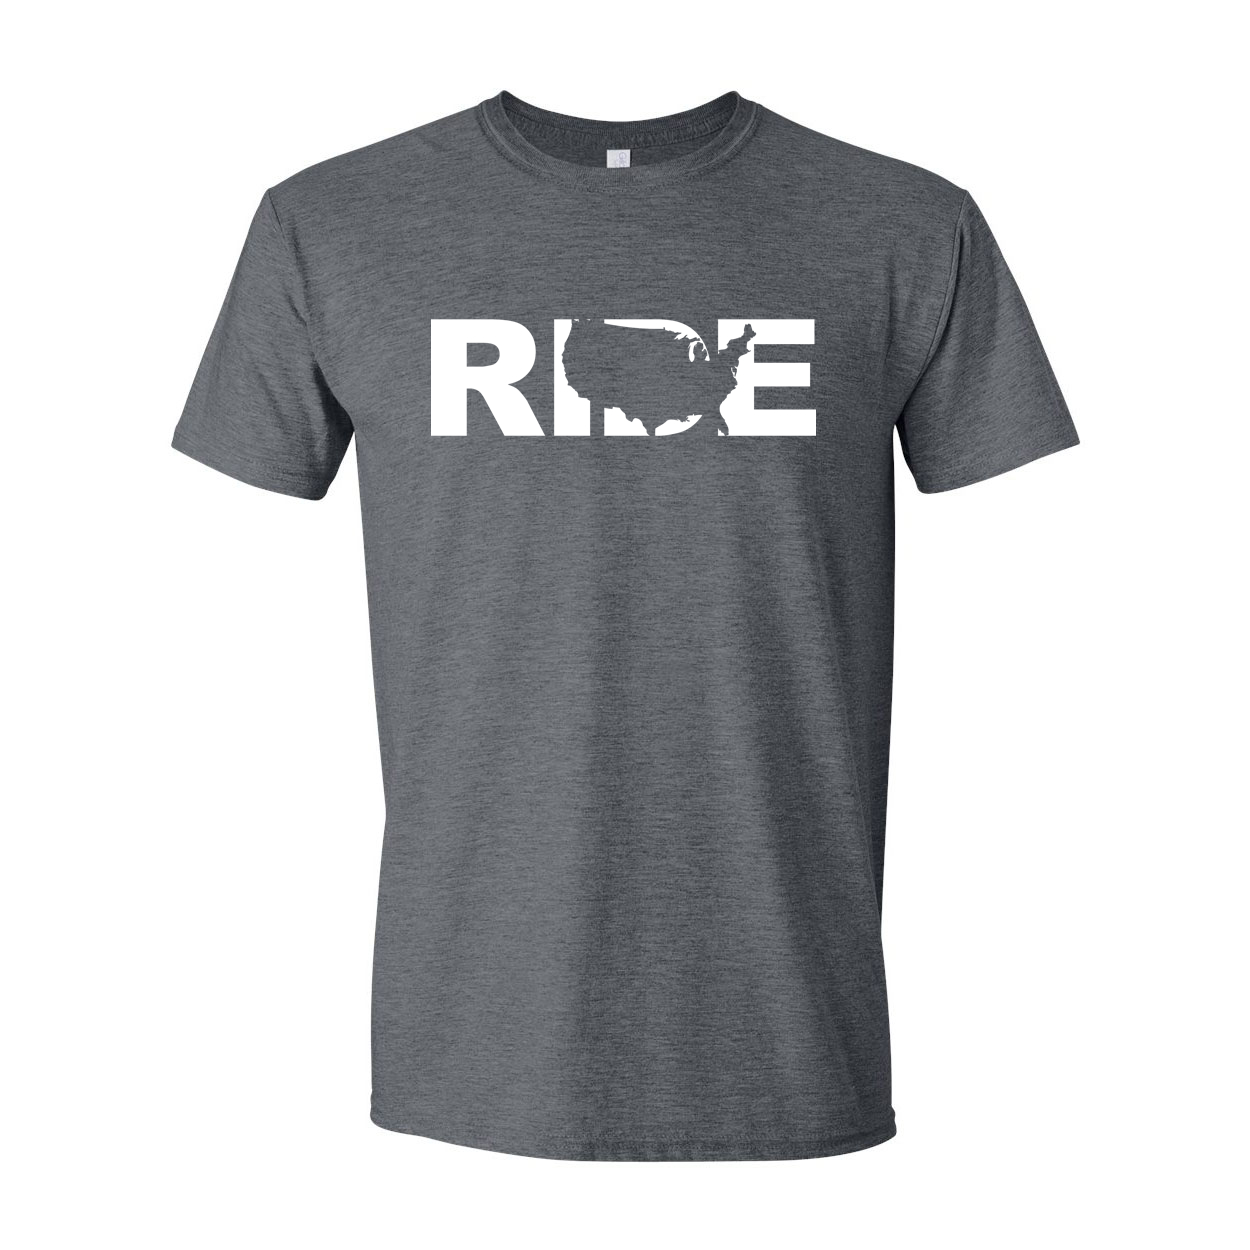 Ride United States Classic T-Shirt Dark Heather Gray (White Logo)